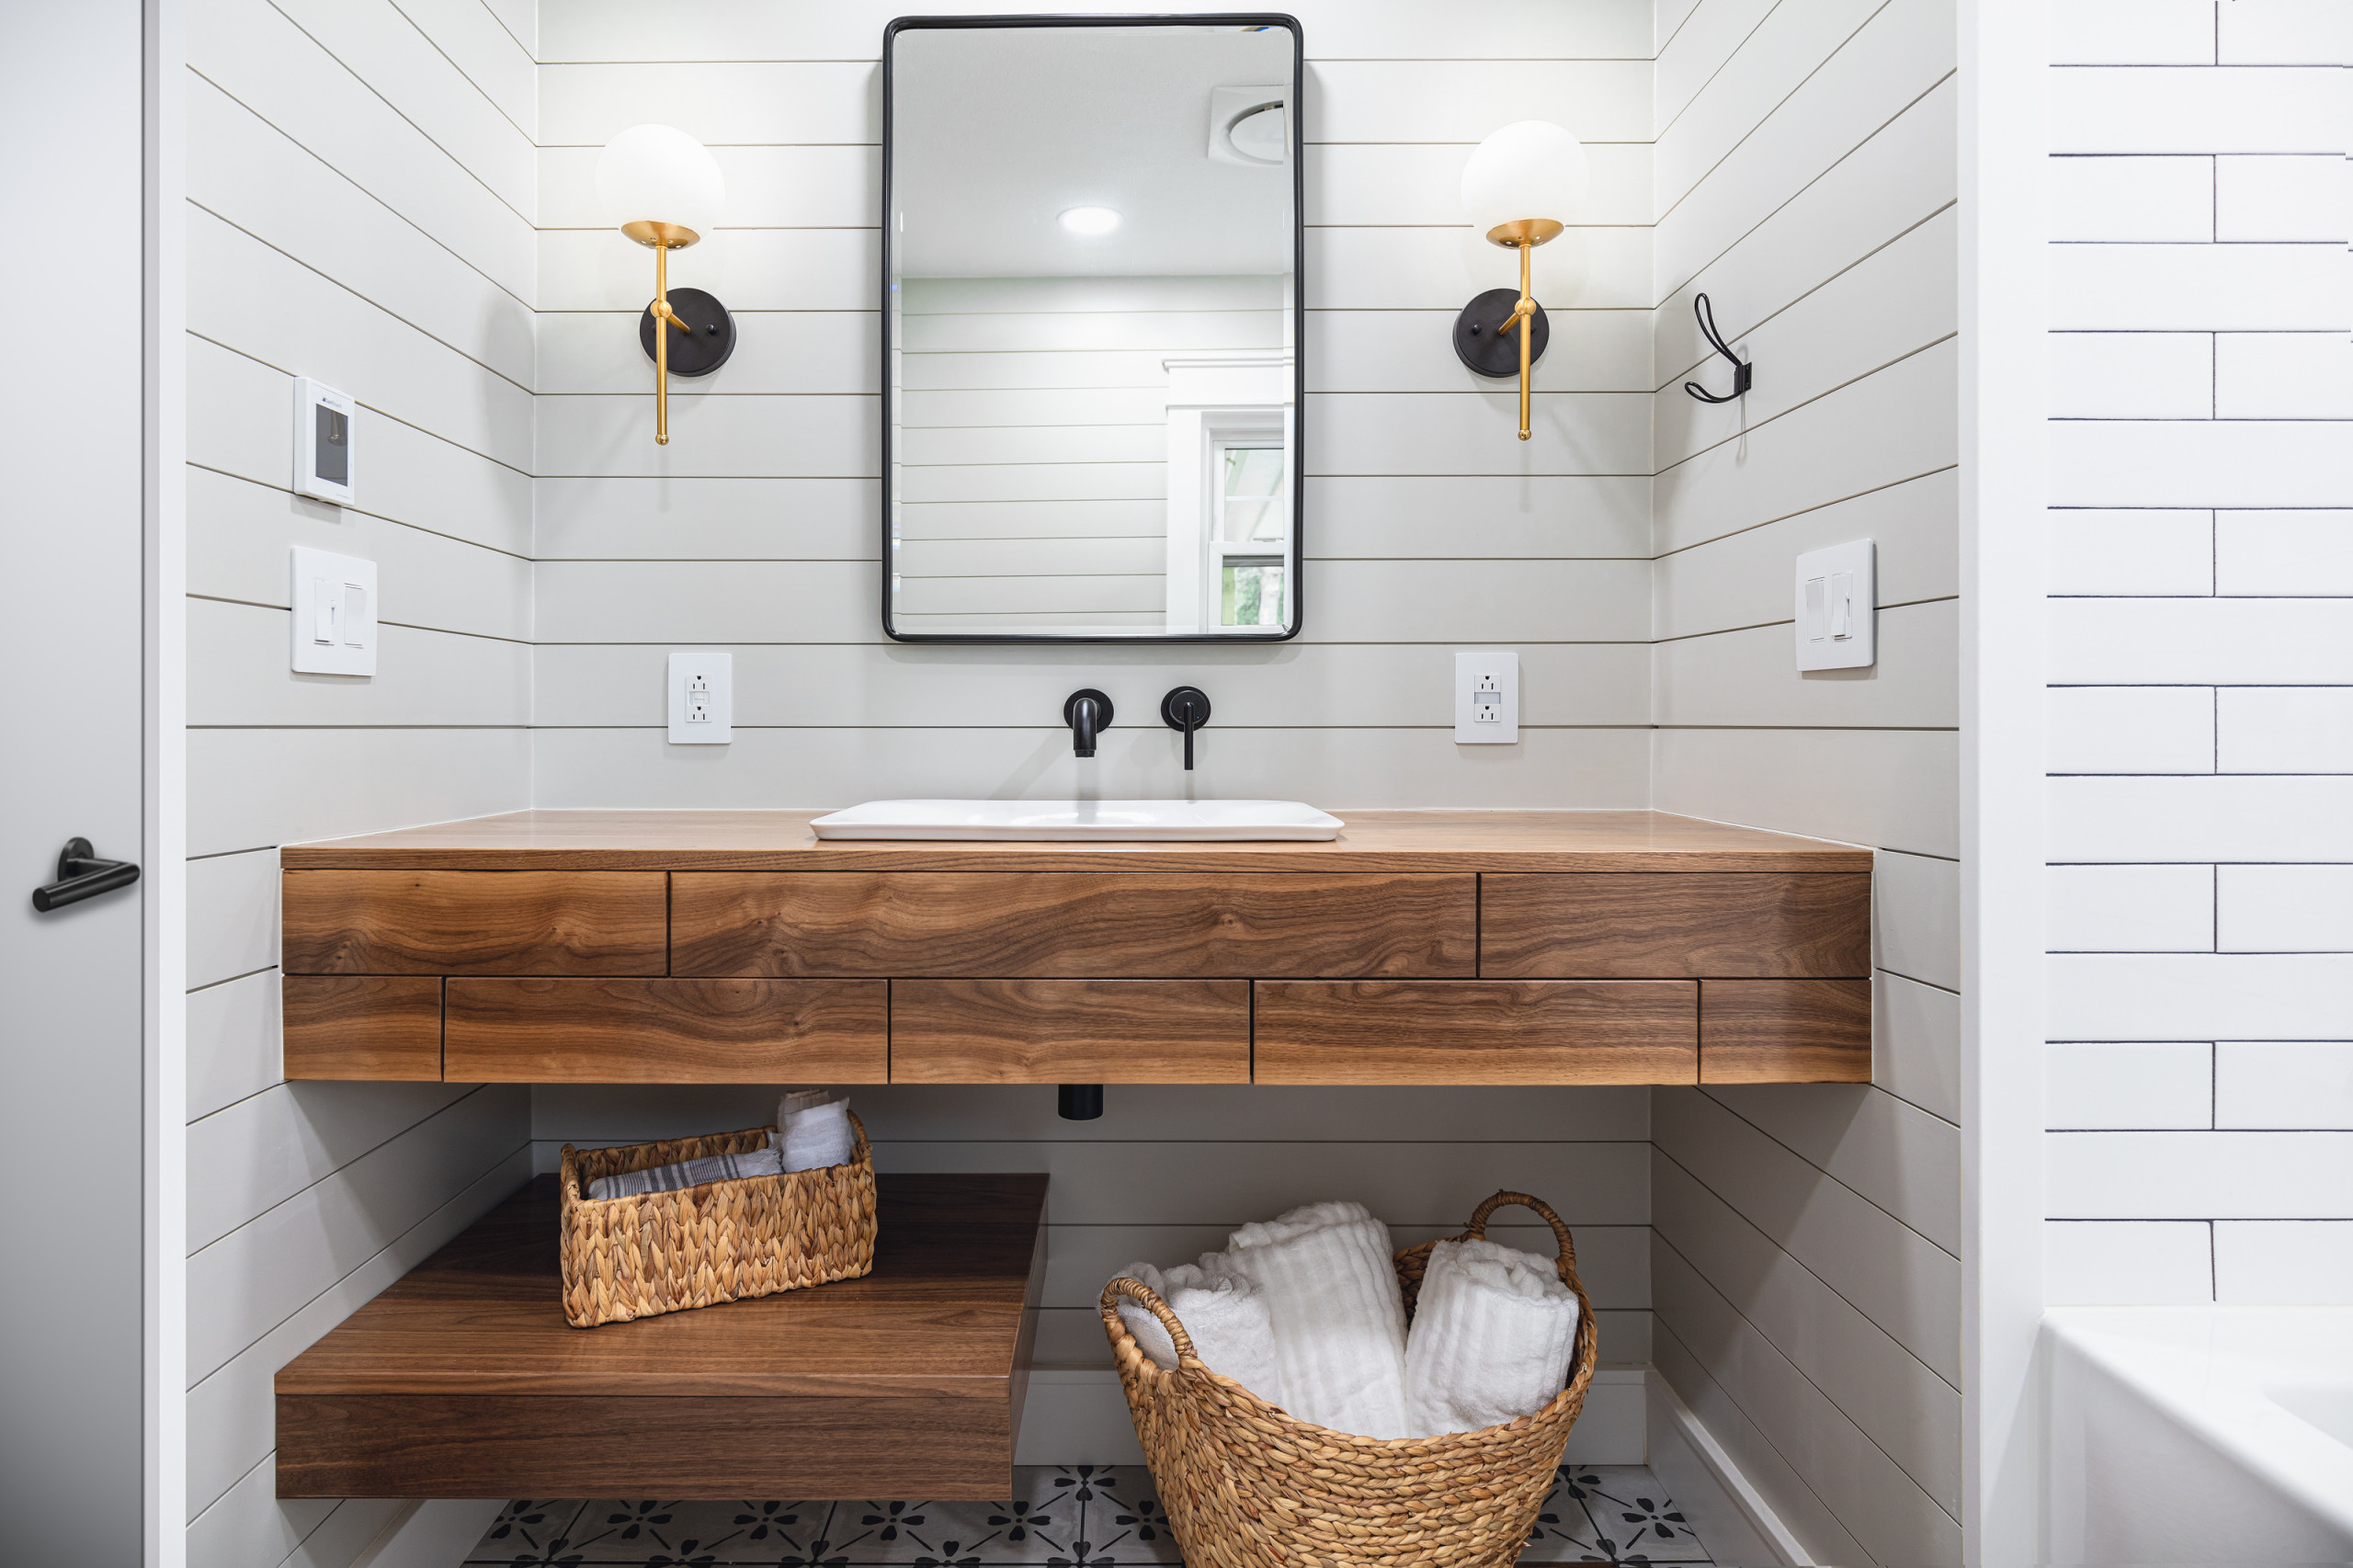 75 Beautiful Shiplap Wall Bathroom Pictures Ideas April 2021 Houzz